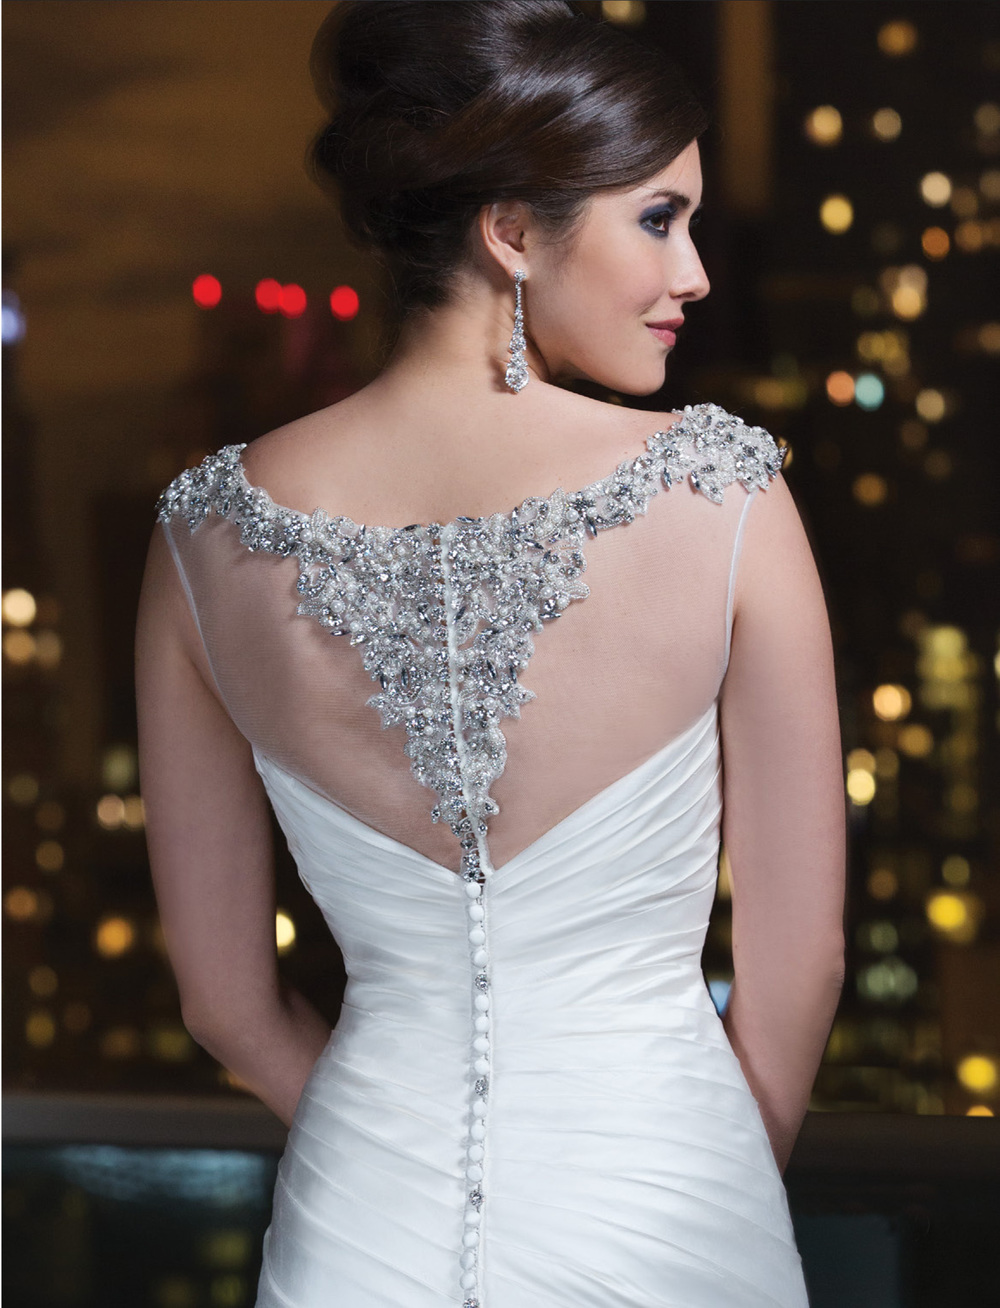 Gown by Justin Alexander, available at Blush Bridal.